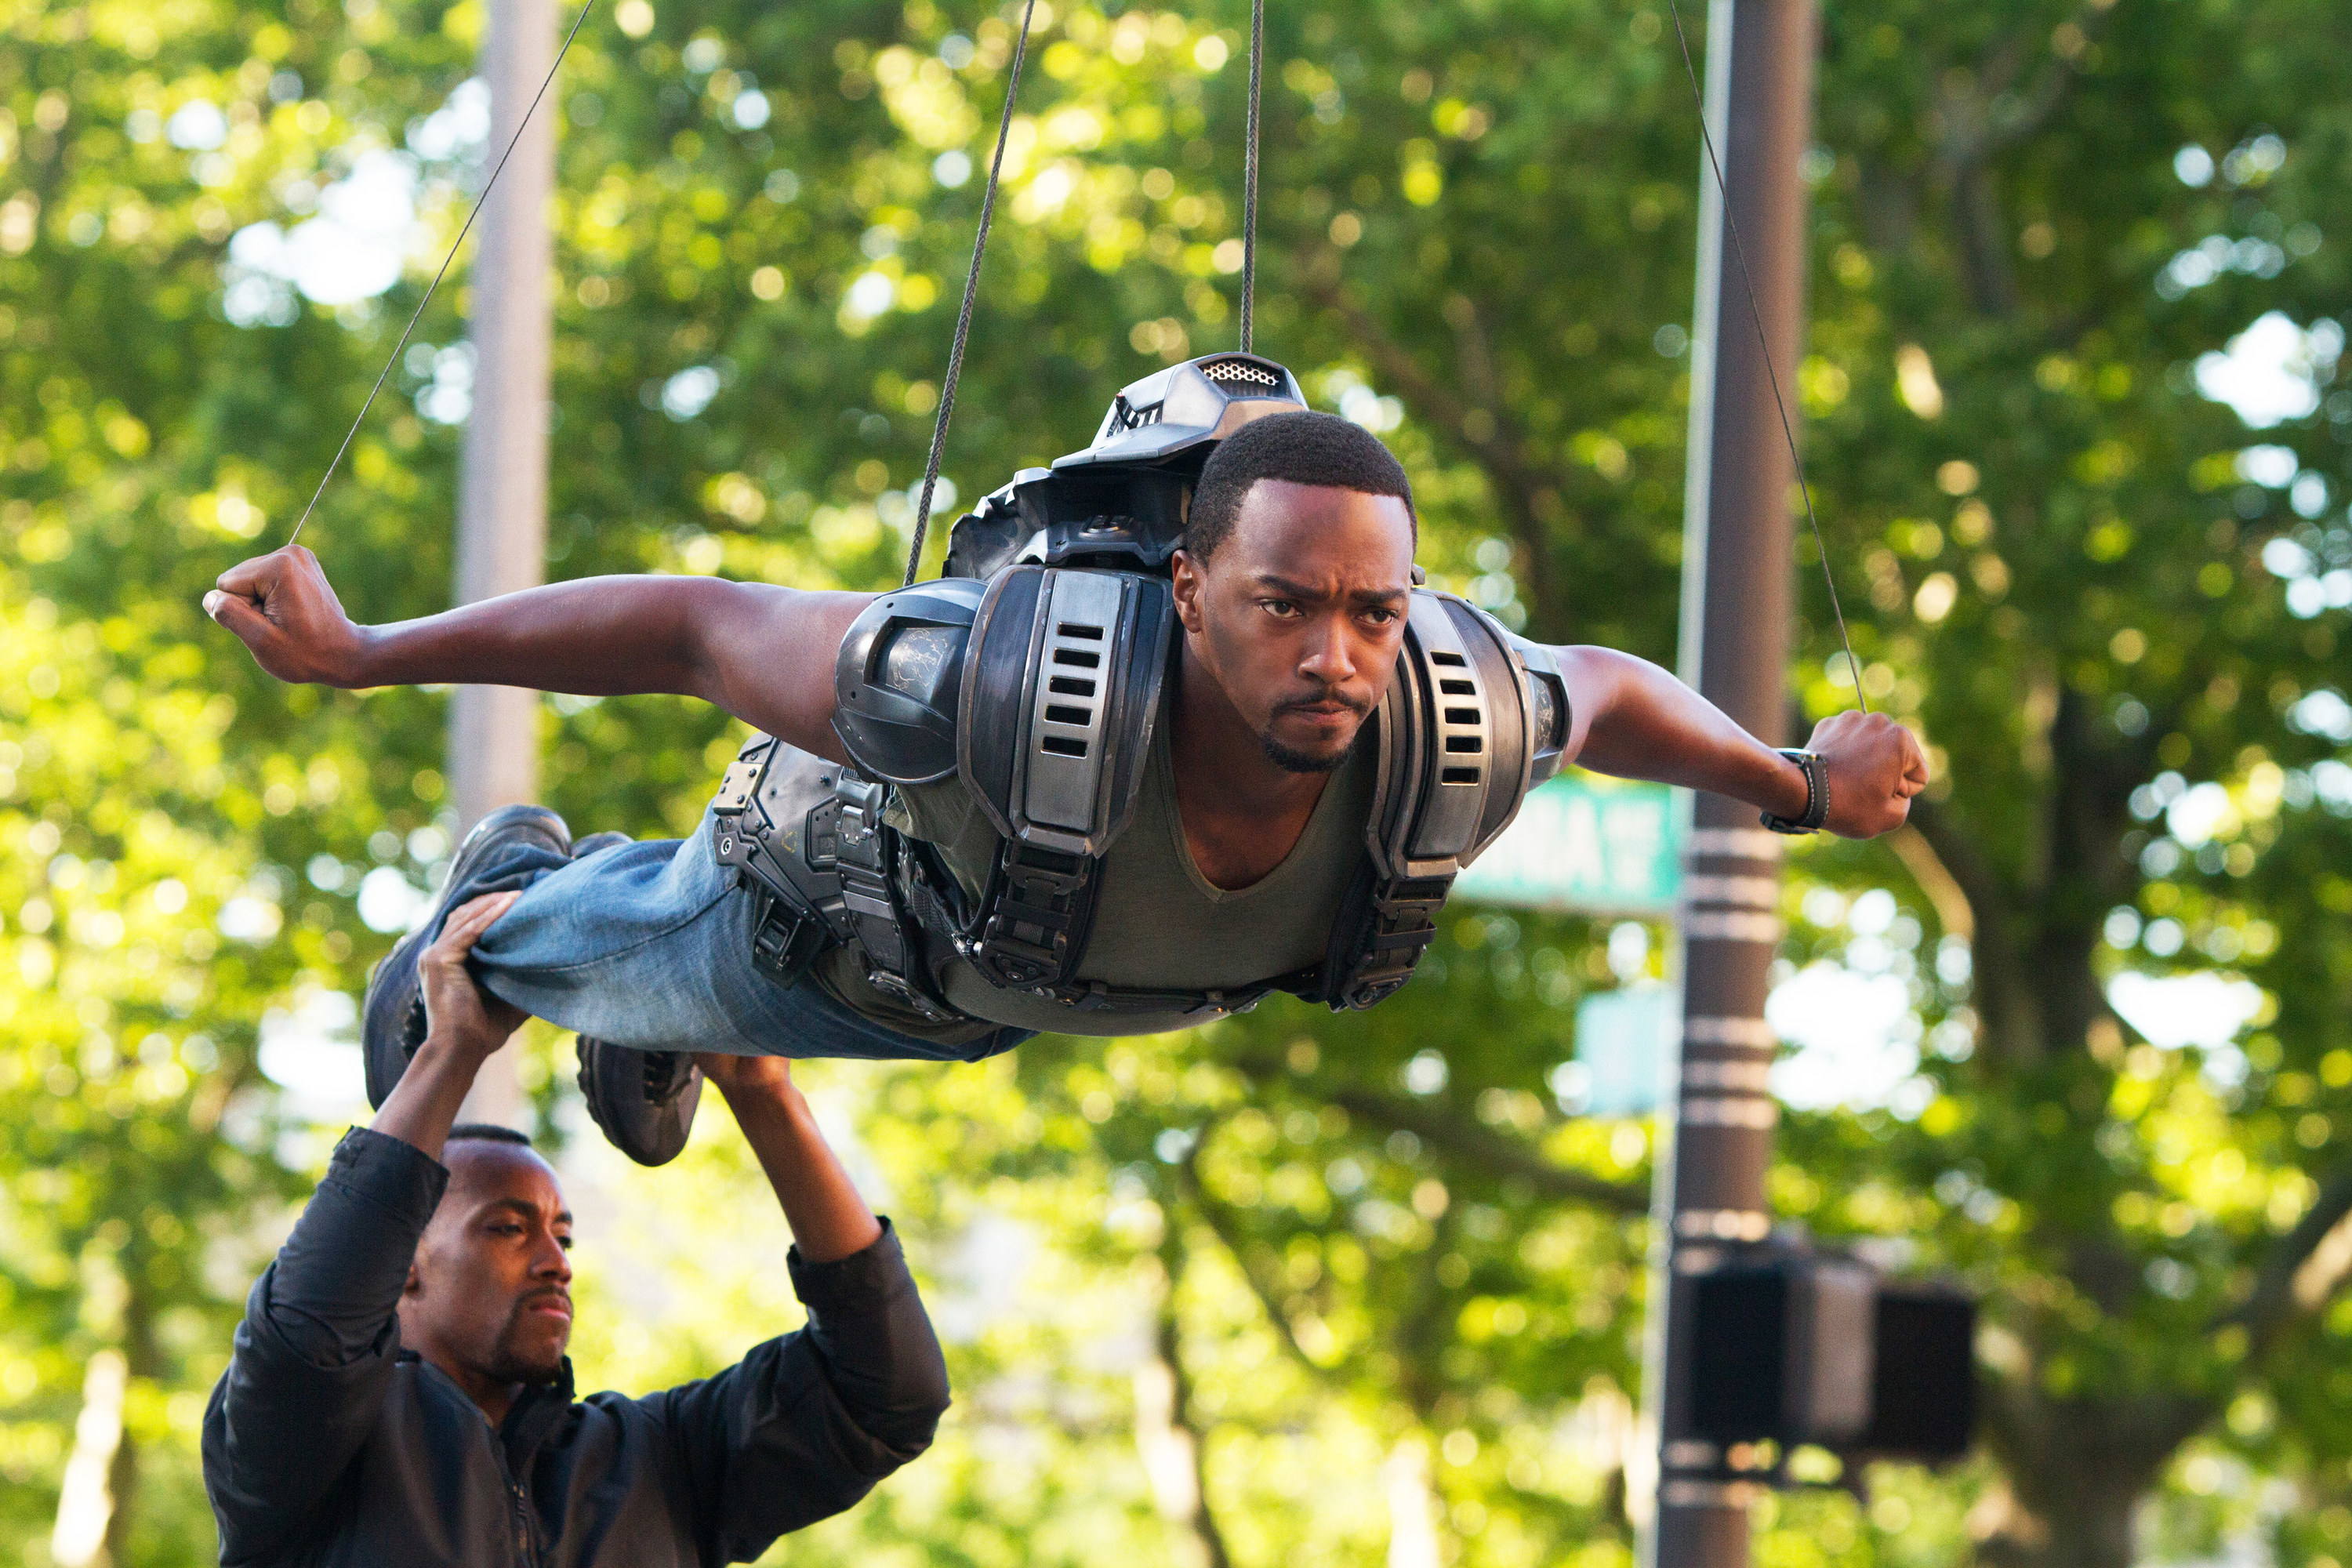 Anthony Mackie being held up by wire and pretending to fly as a man holds up his feet